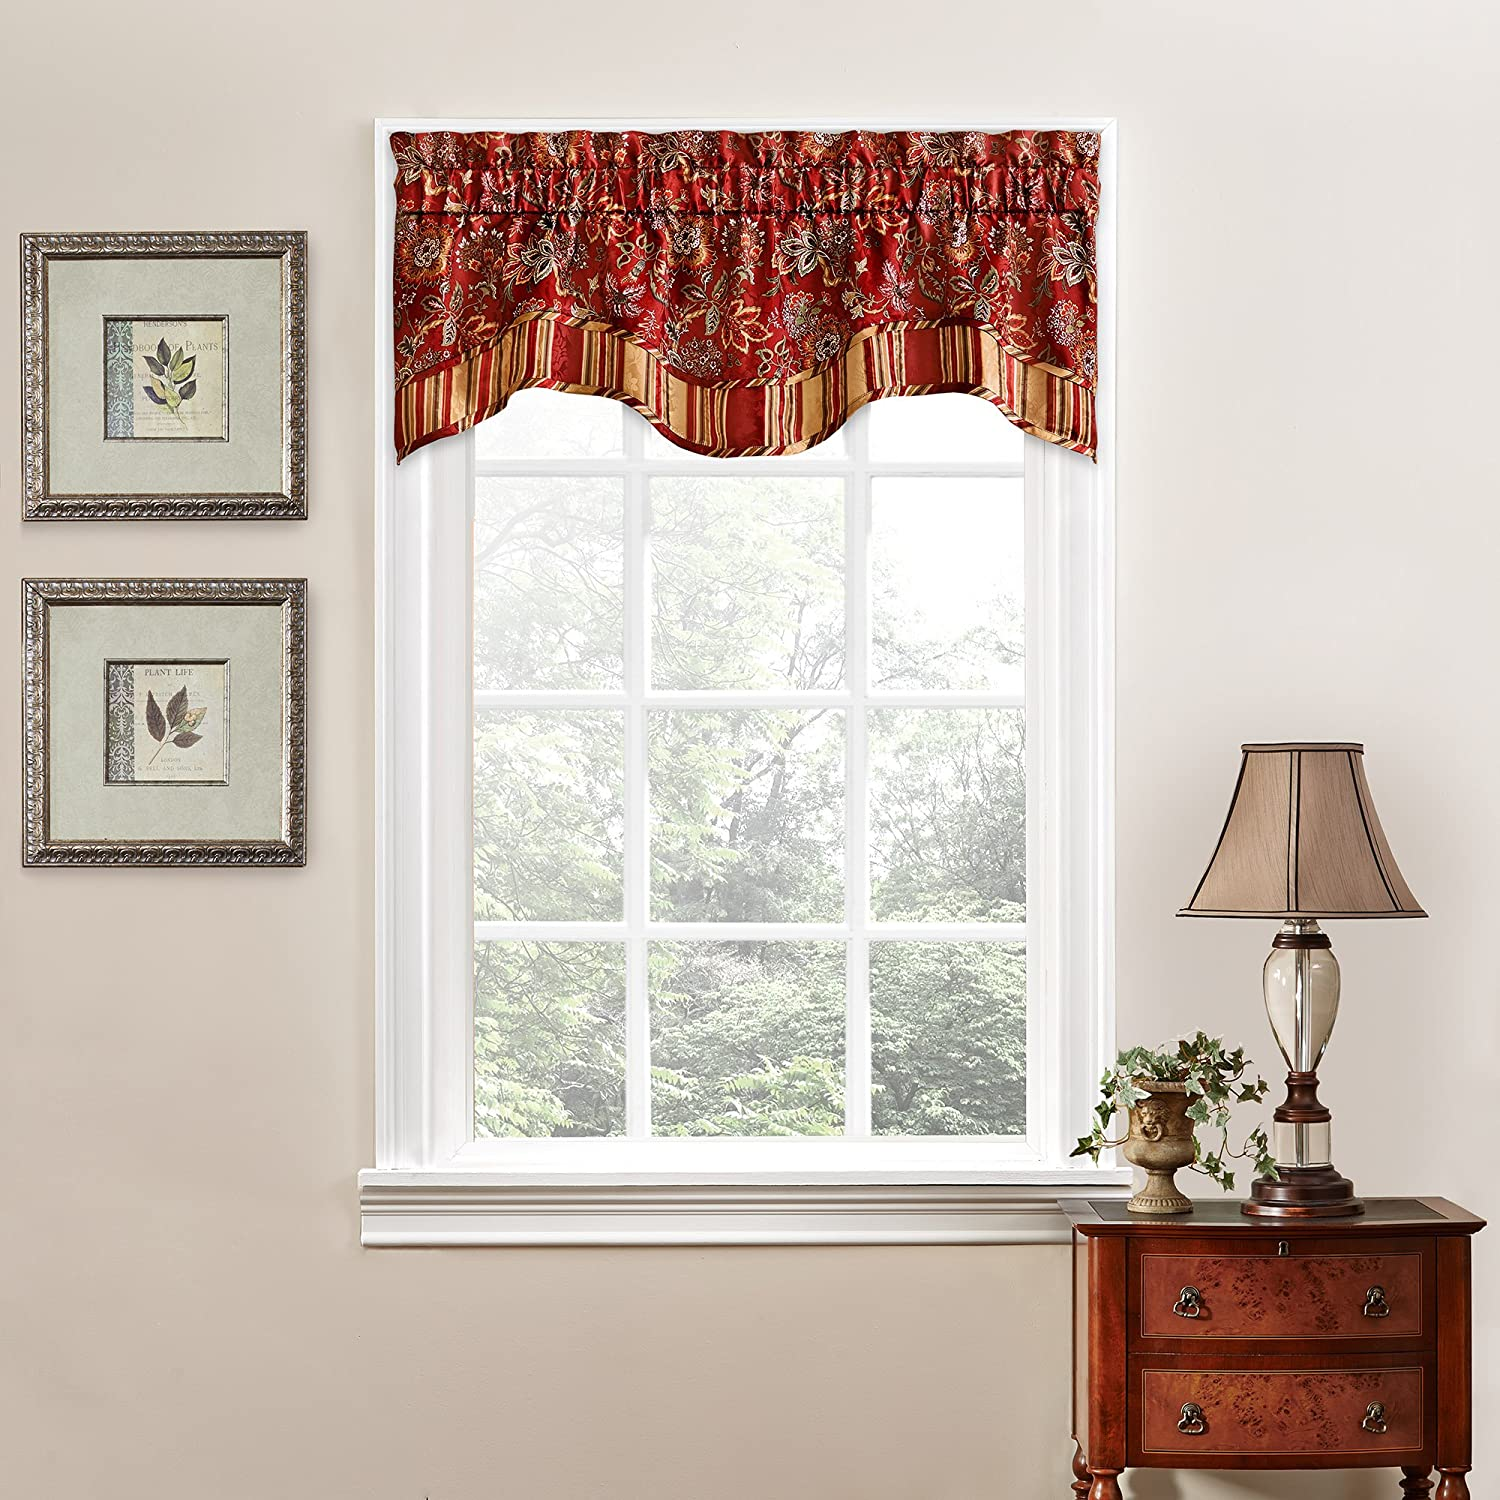 window free overstock on valances shipping valance home waverly garden product castleford over orders